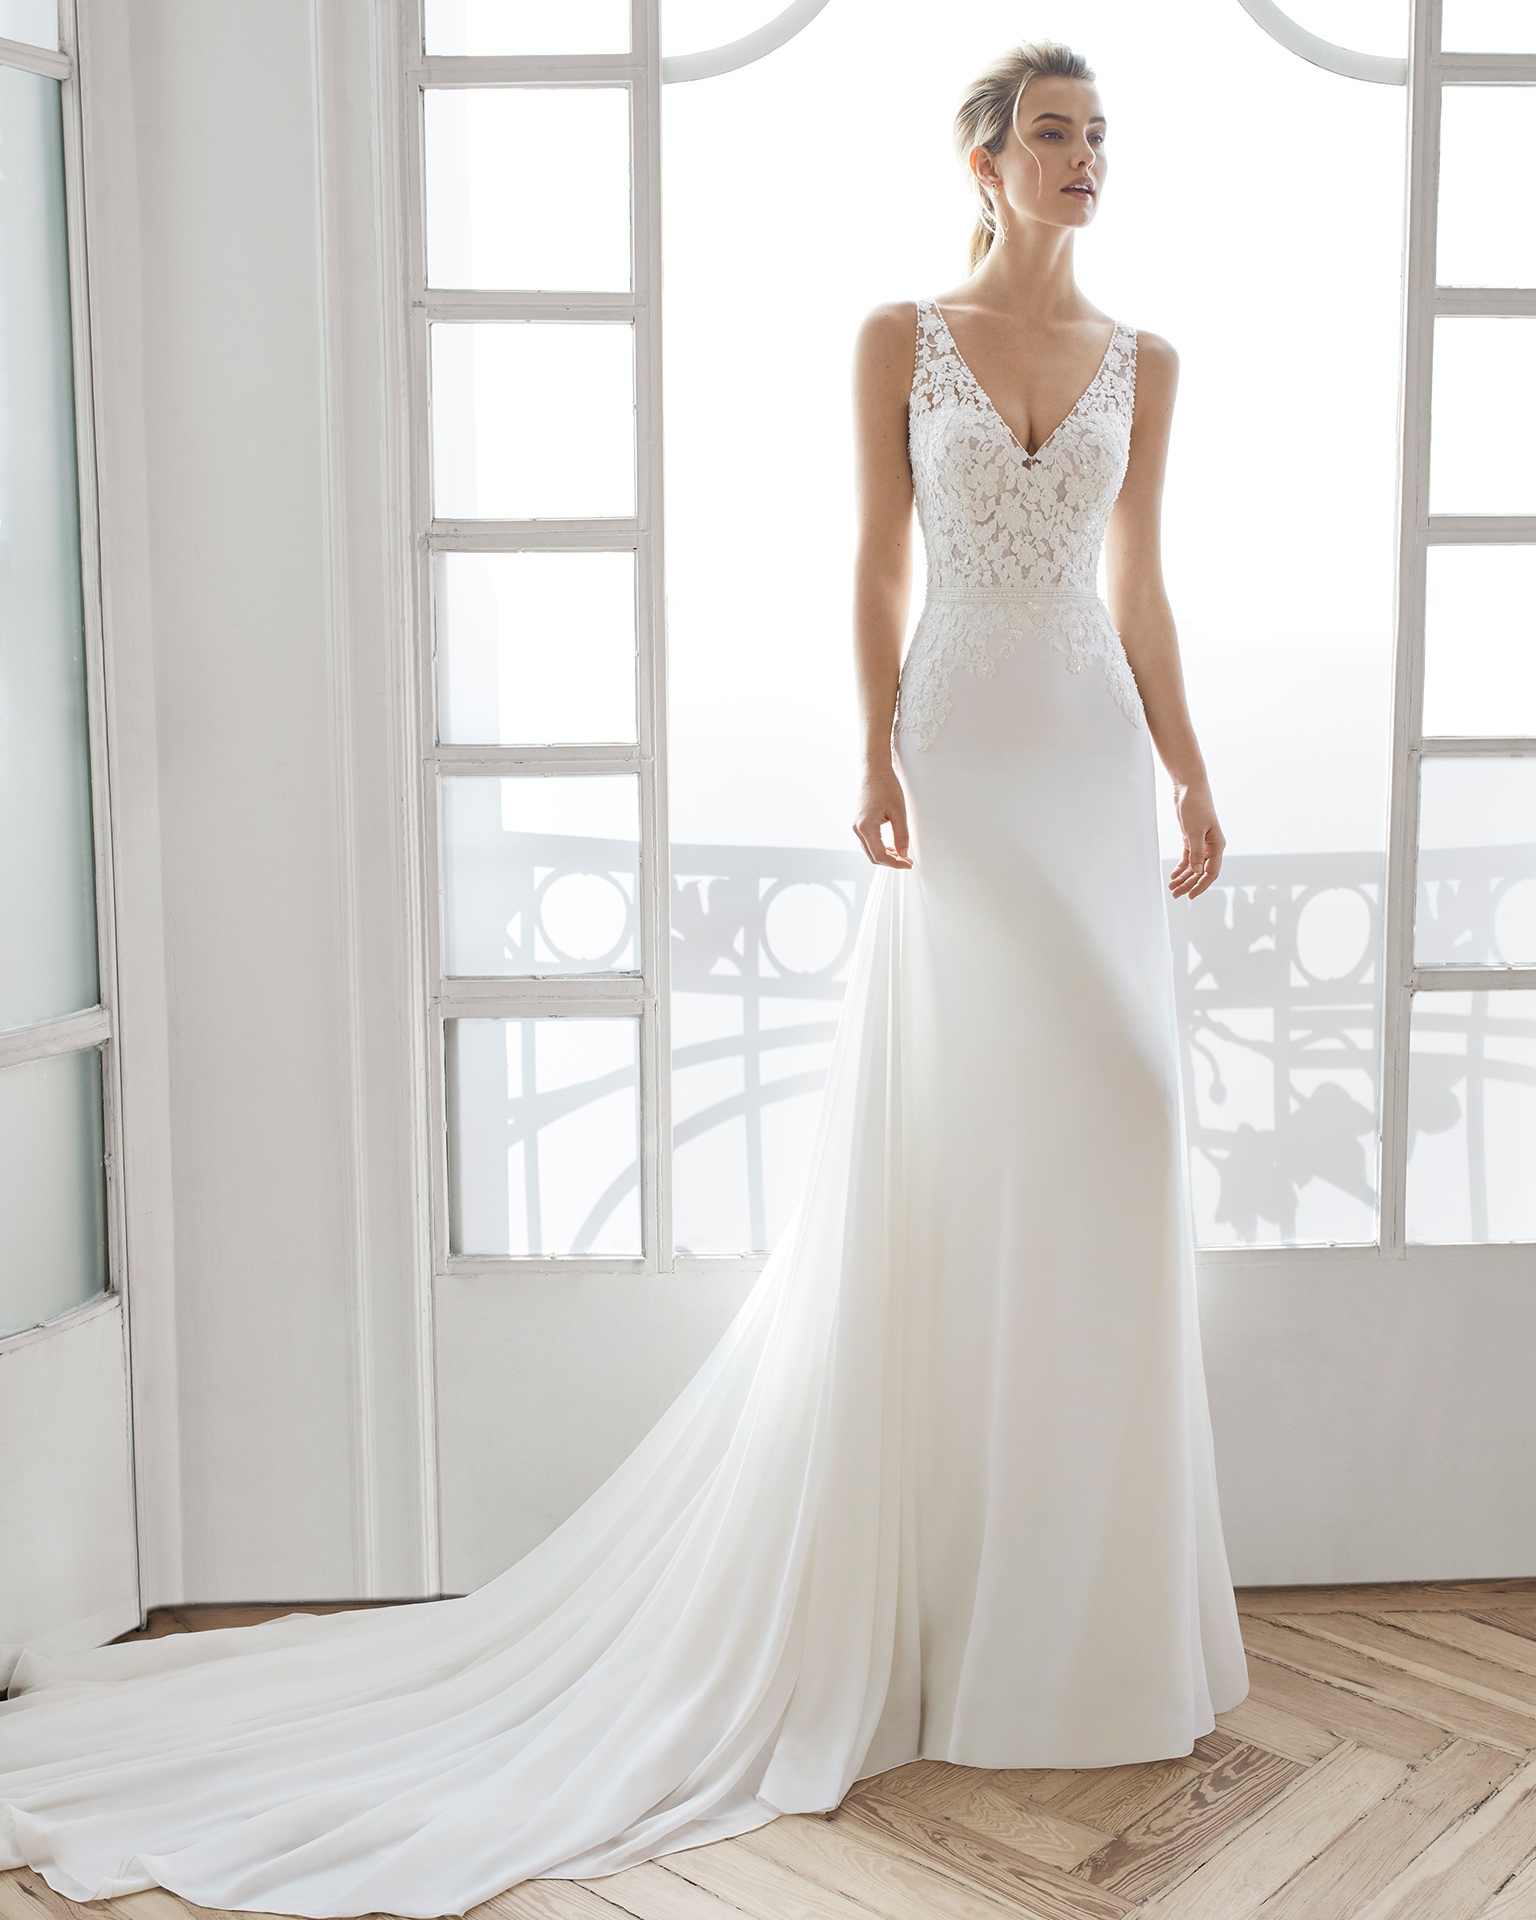 Sheath-style wedding dress in beaded lace and chiffon. V-neckline with beaded straps and lace back. Available in natural. 2019 AIRE BARCELONA Collection.